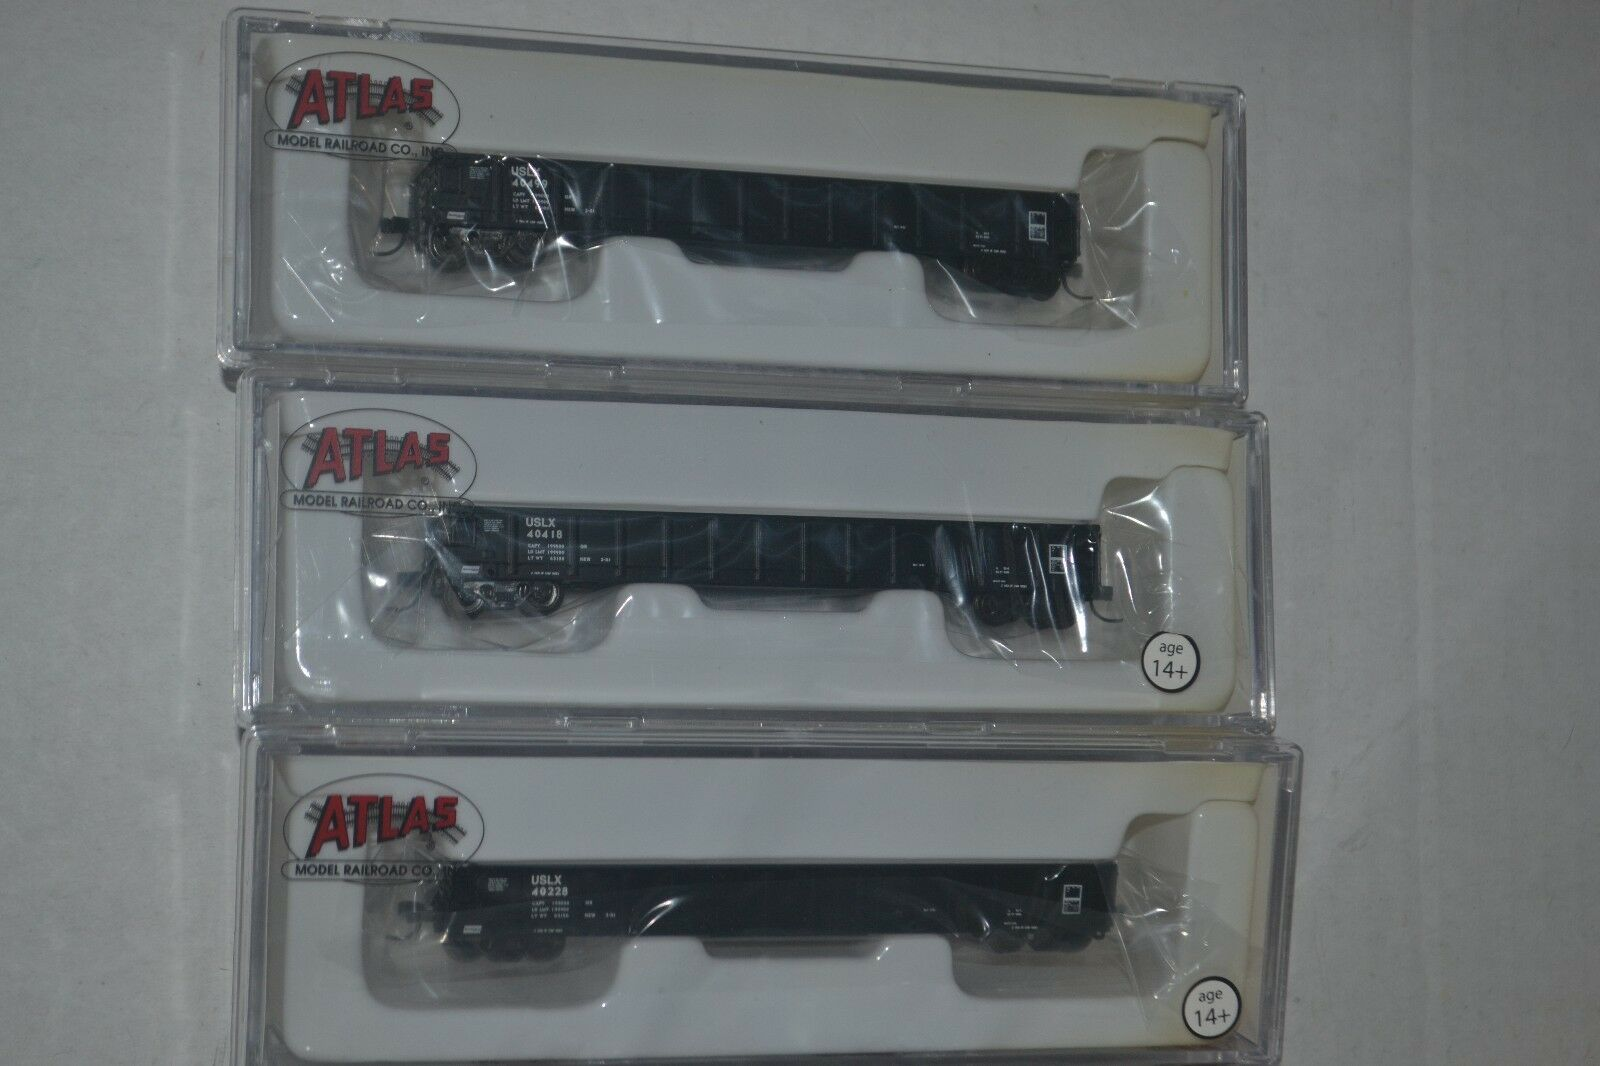 3 Atlas US Railway Equipment Evans 52' Gondola N scale 50000561, 562, 563